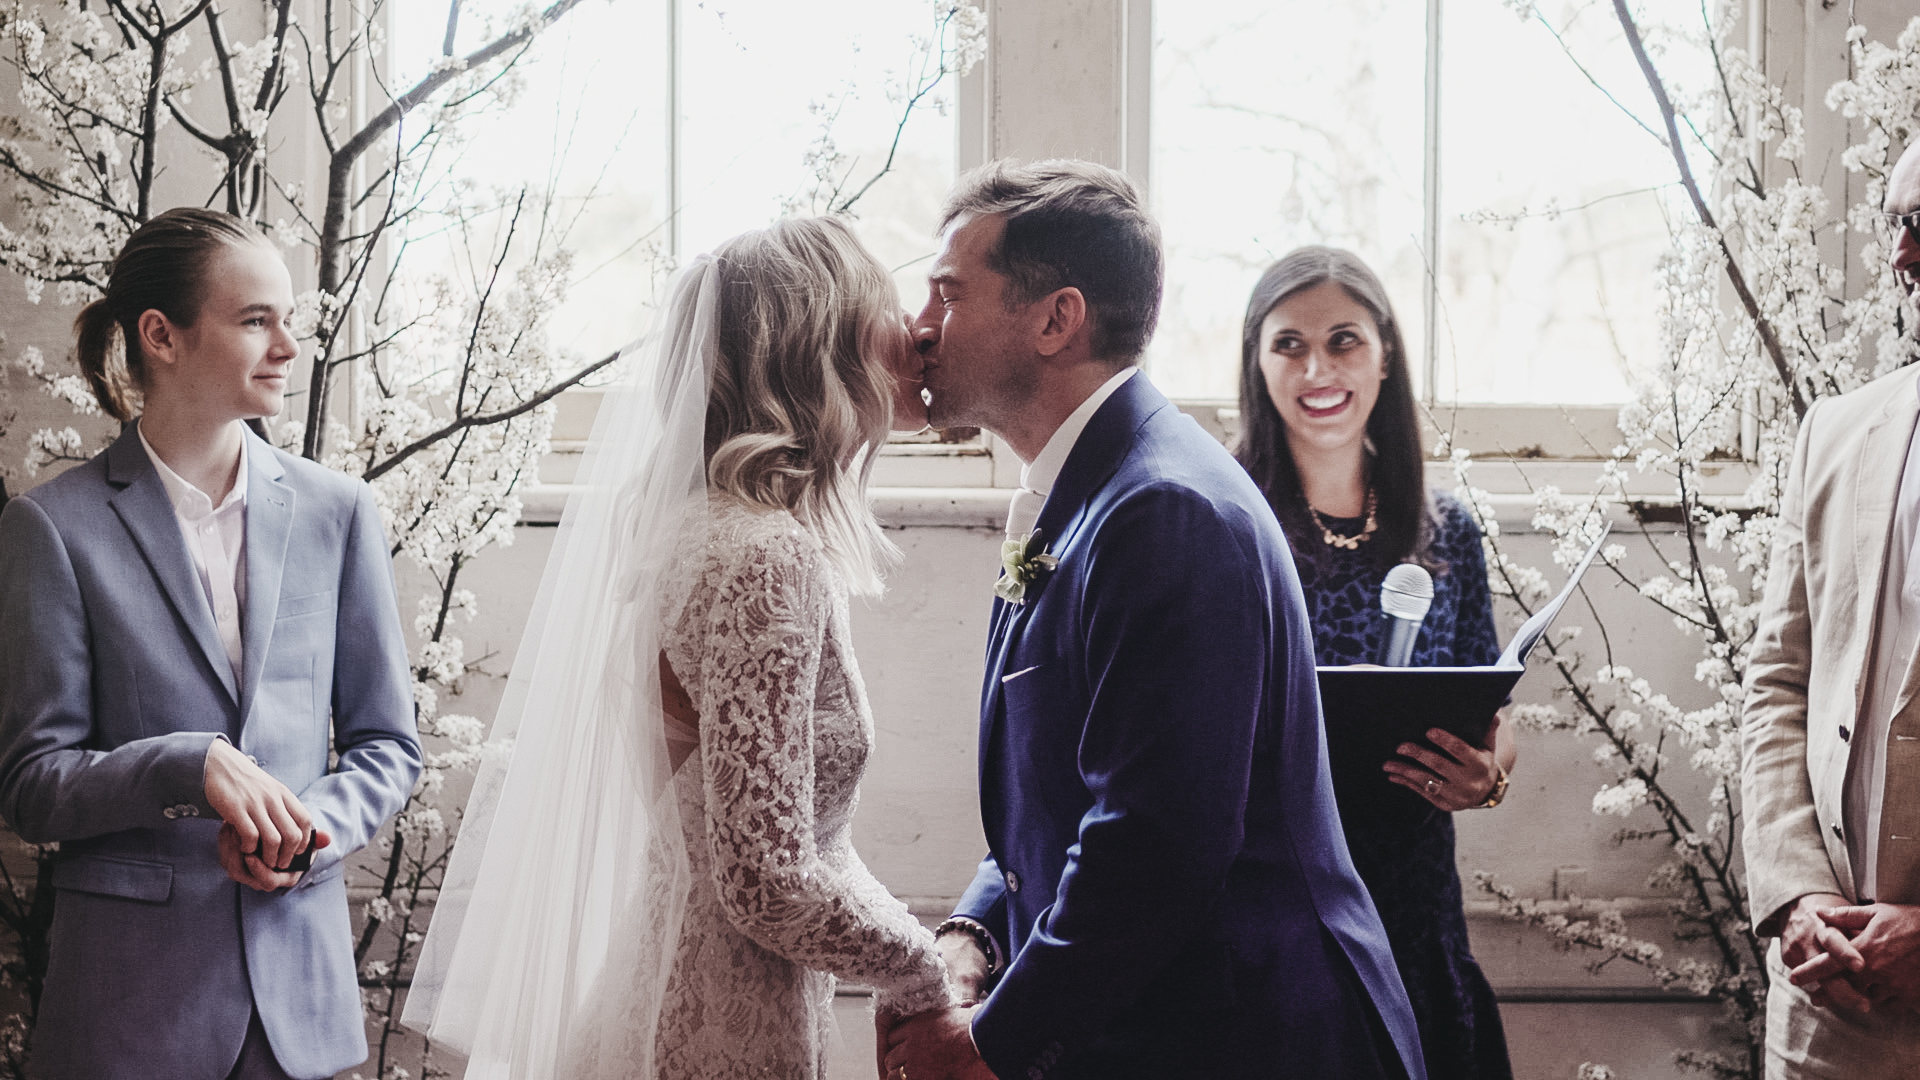 Newly married couple sharing their first kiss as husband and wife at their rustic country wedding